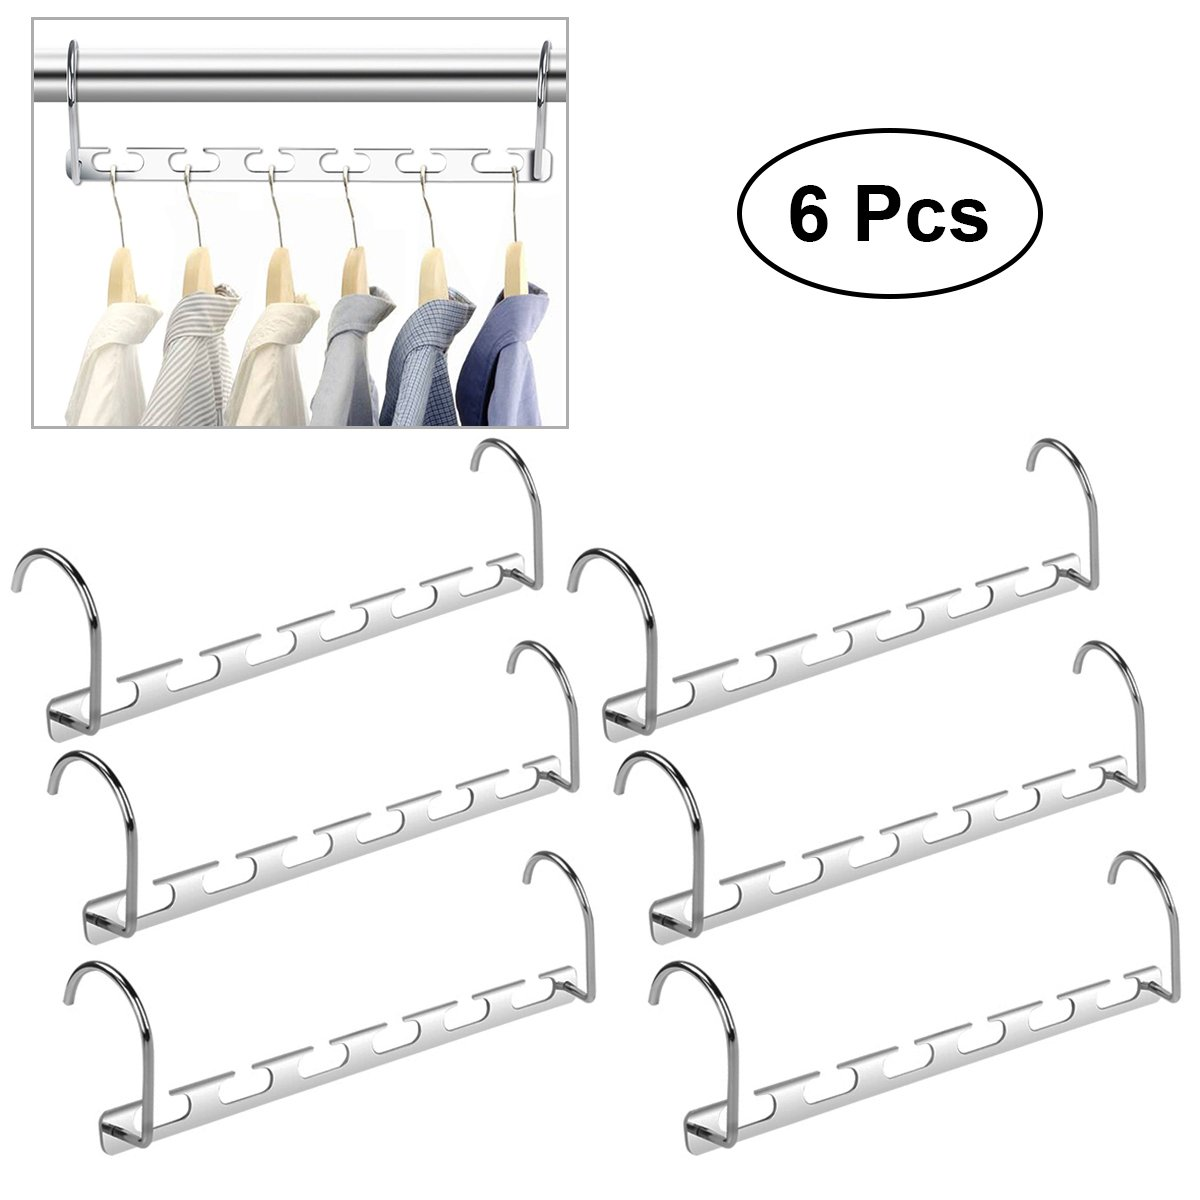 HEALIFTY 6pcs Multifunction Wardrobe Closet Bar Clothes Coat Hanger Organizer (Silver)